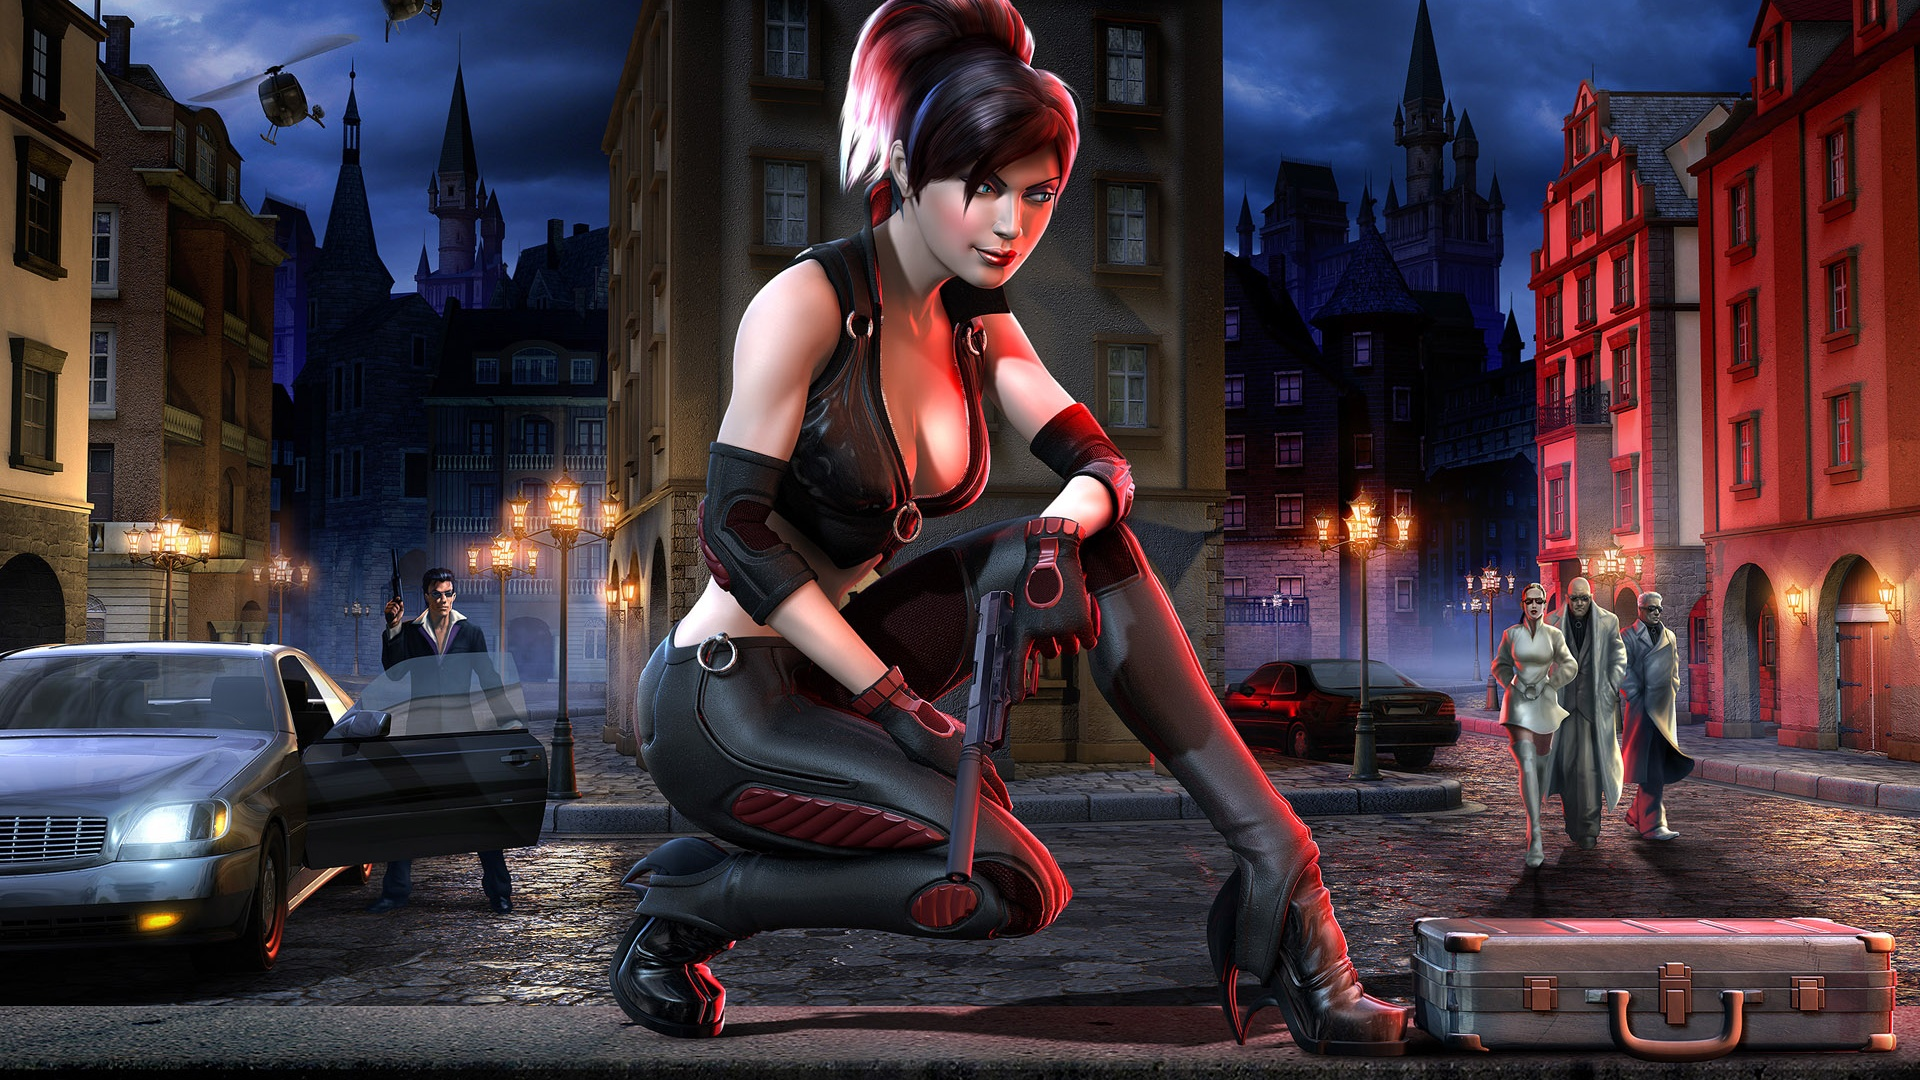 wallpaper beautiful fantasy girl robbers 1920x1200 hd picture, image